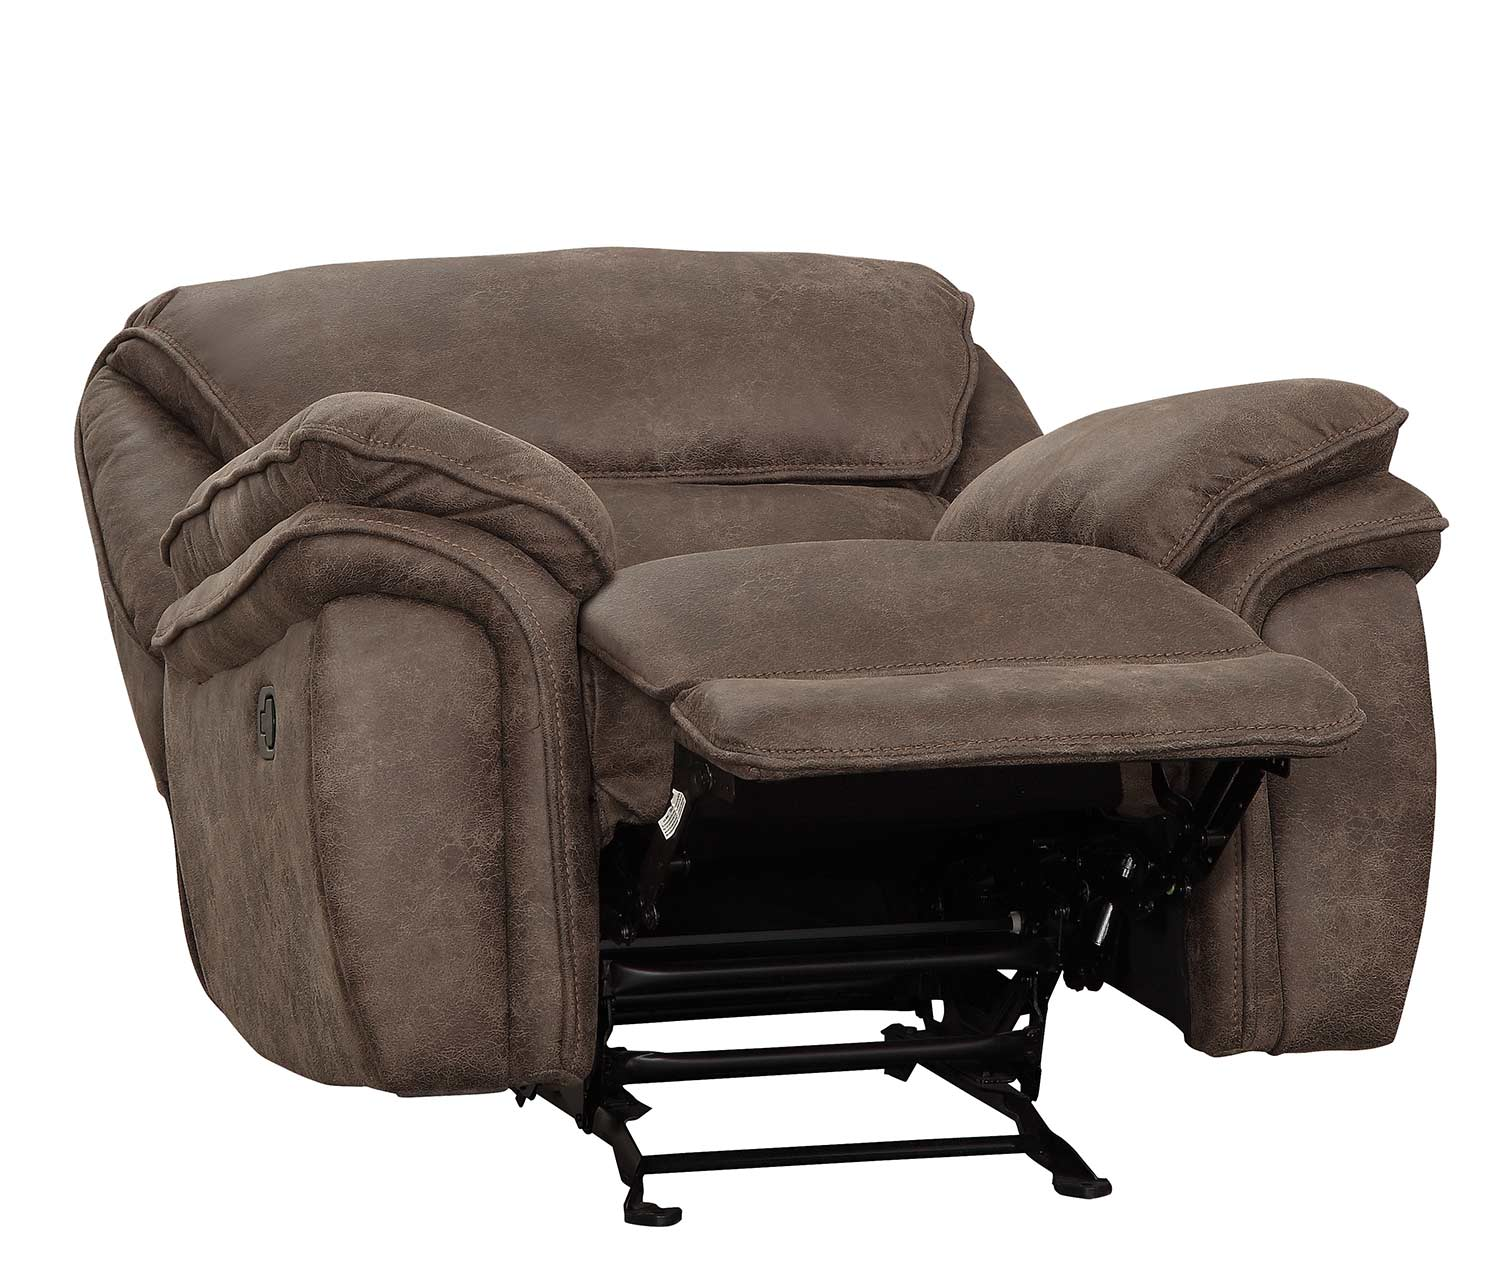 Homelegance Hadden Power Reclining Chair - Dark Brown